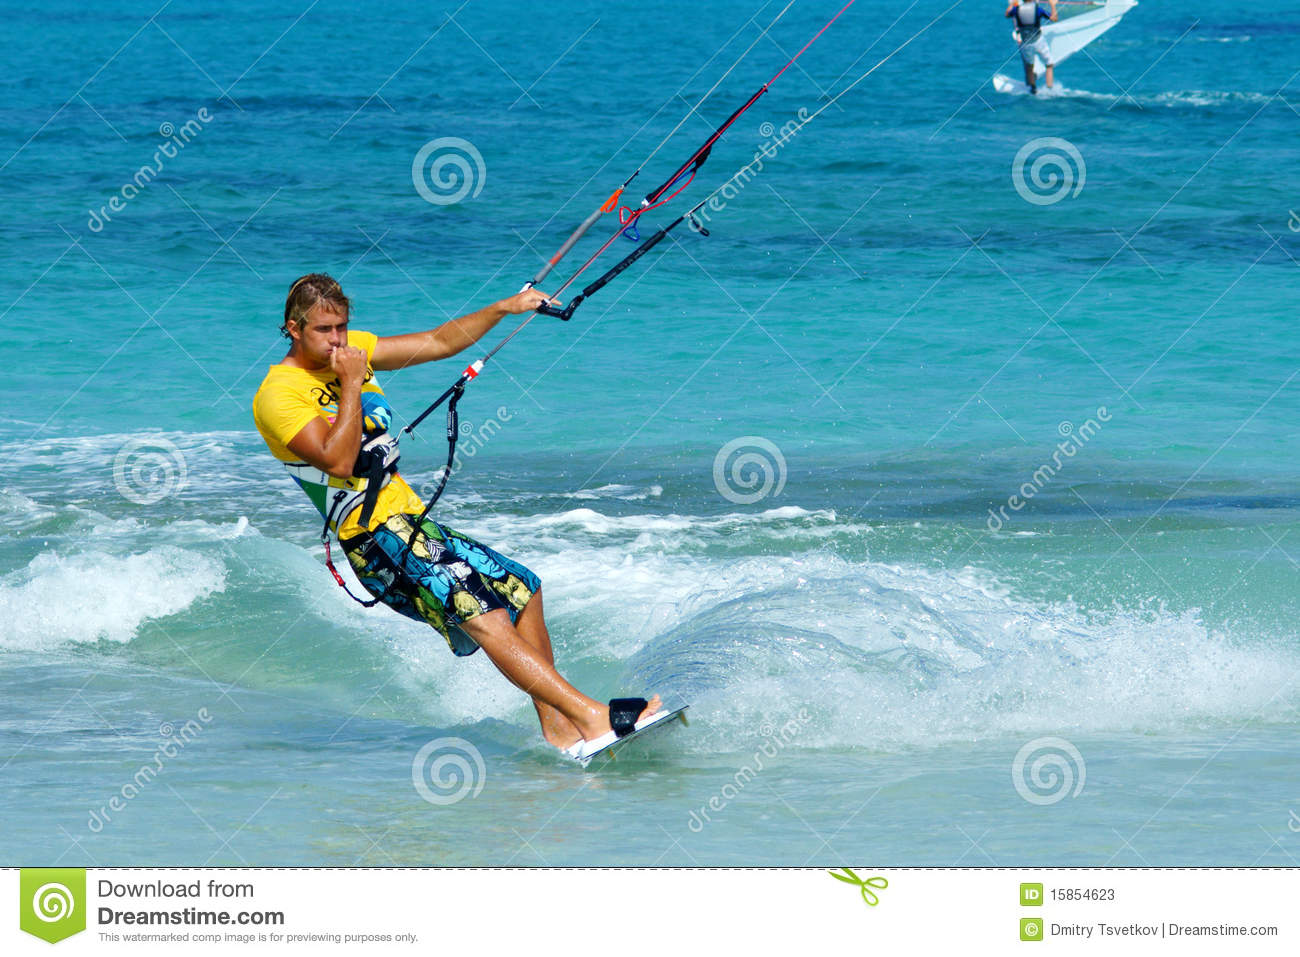 kite surfing descriptive essay about kitesurfing Essay about power kite and kite under-inflated kite kiteboarding is a hazardous sport essay about power kite and kite under-inflated kite.